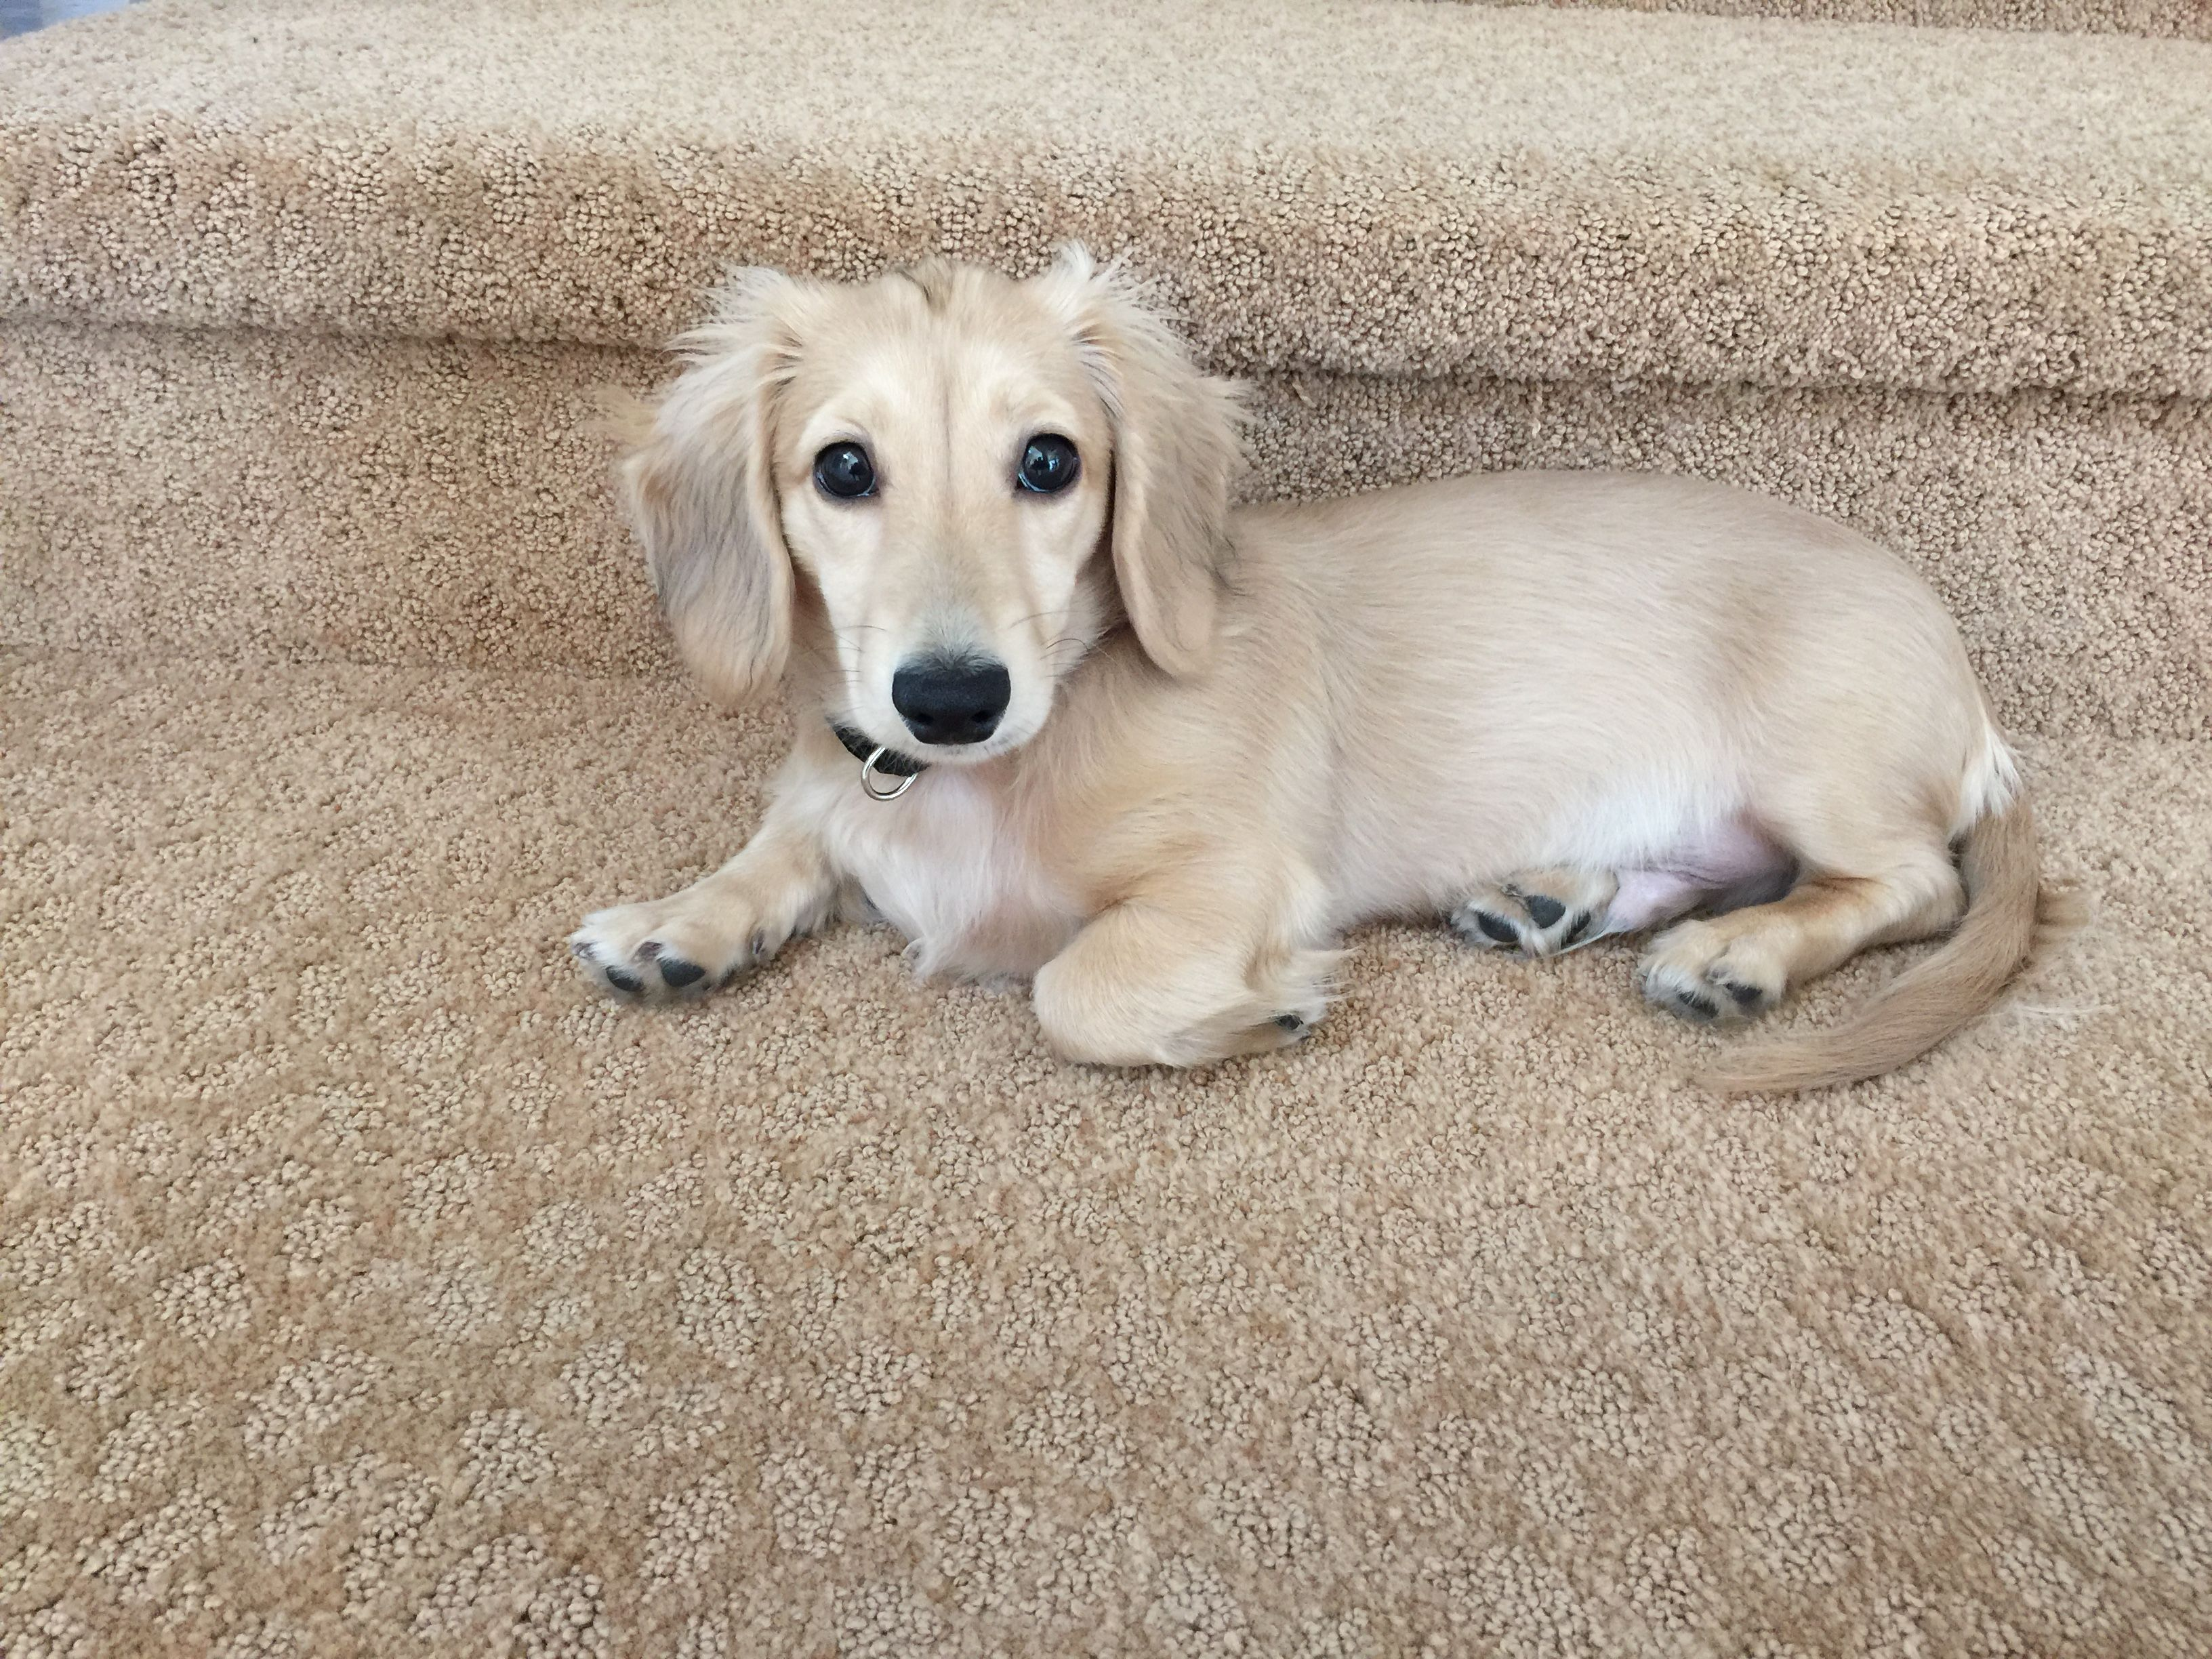 Ernie Today 4 5 Months Old Long Haired English Cream Dachshund Dachshund Dog Dachshund Love Weenie Dogs